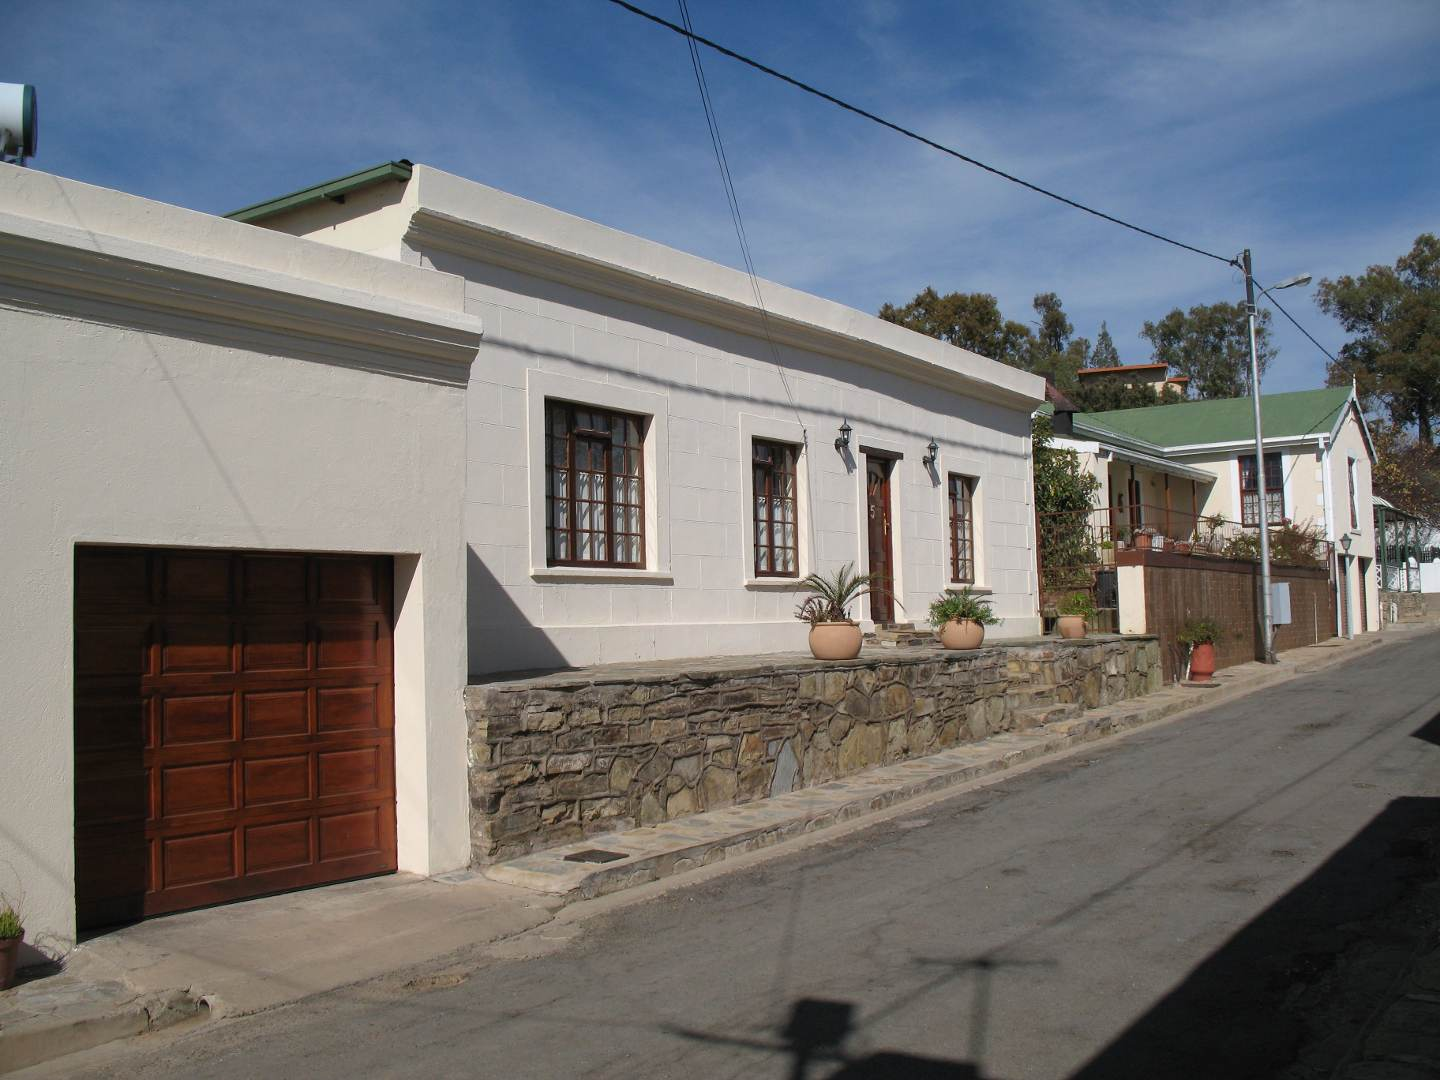 Colesberg South Africa  City new picture : Toverberg Guest Houses, Colesberg, South Africa